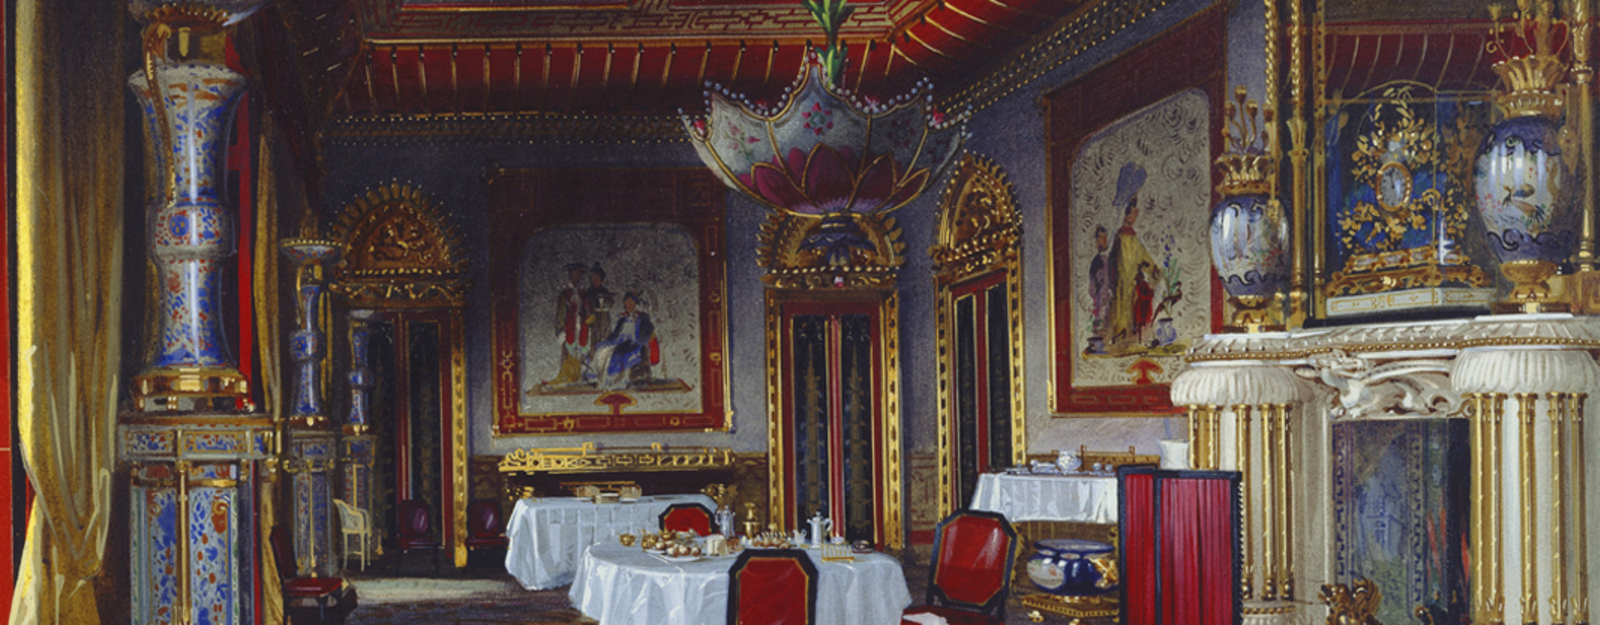 Course Study Day Chinoiserie At Buckingham Palace And